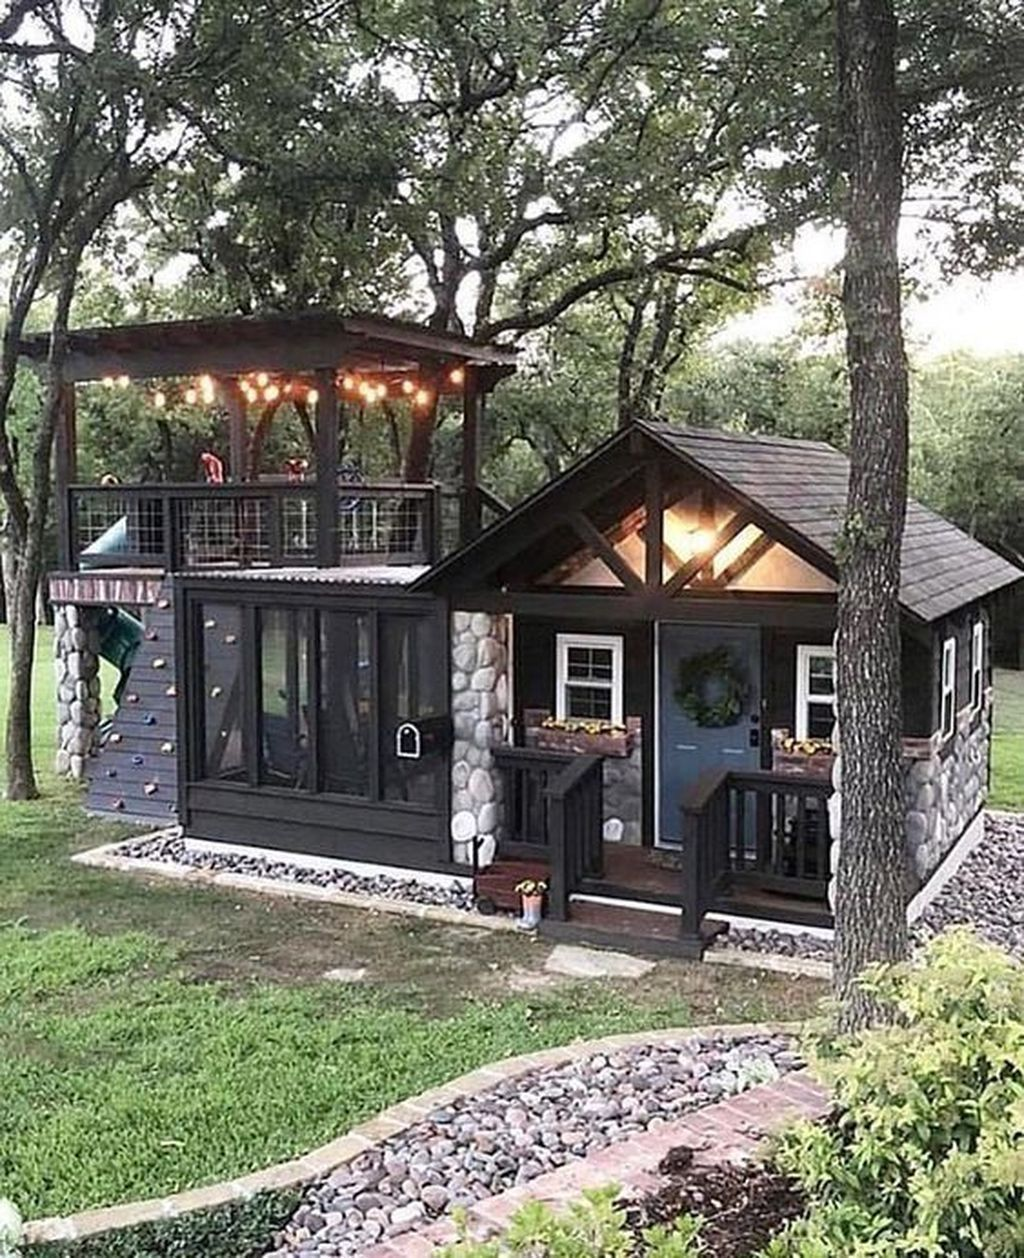 20 Astonishing Tiny House Design Ideas That Inspired To The Moon In 2020 Best Tiny House Dream House Exterior Small House Design